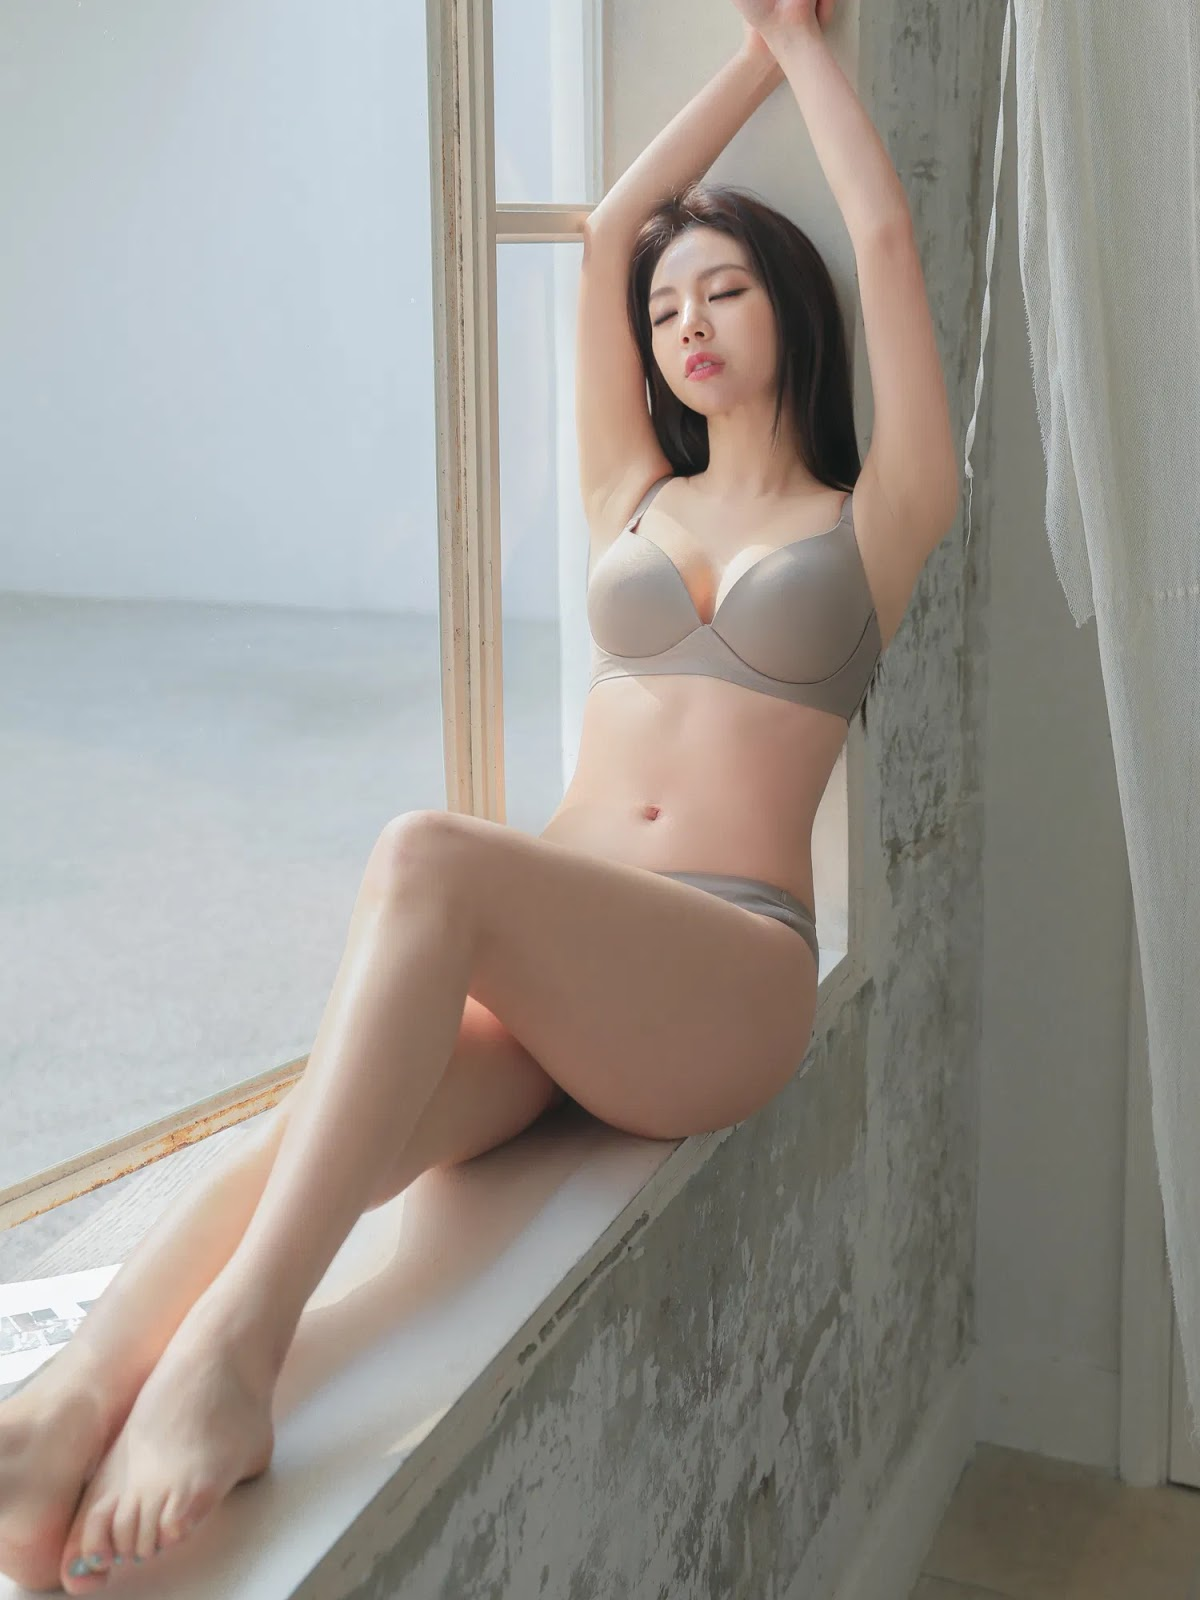 Lee Chaeeun - NUDMALL - March 2021 Lingerie Photoshoot (full set in comments)